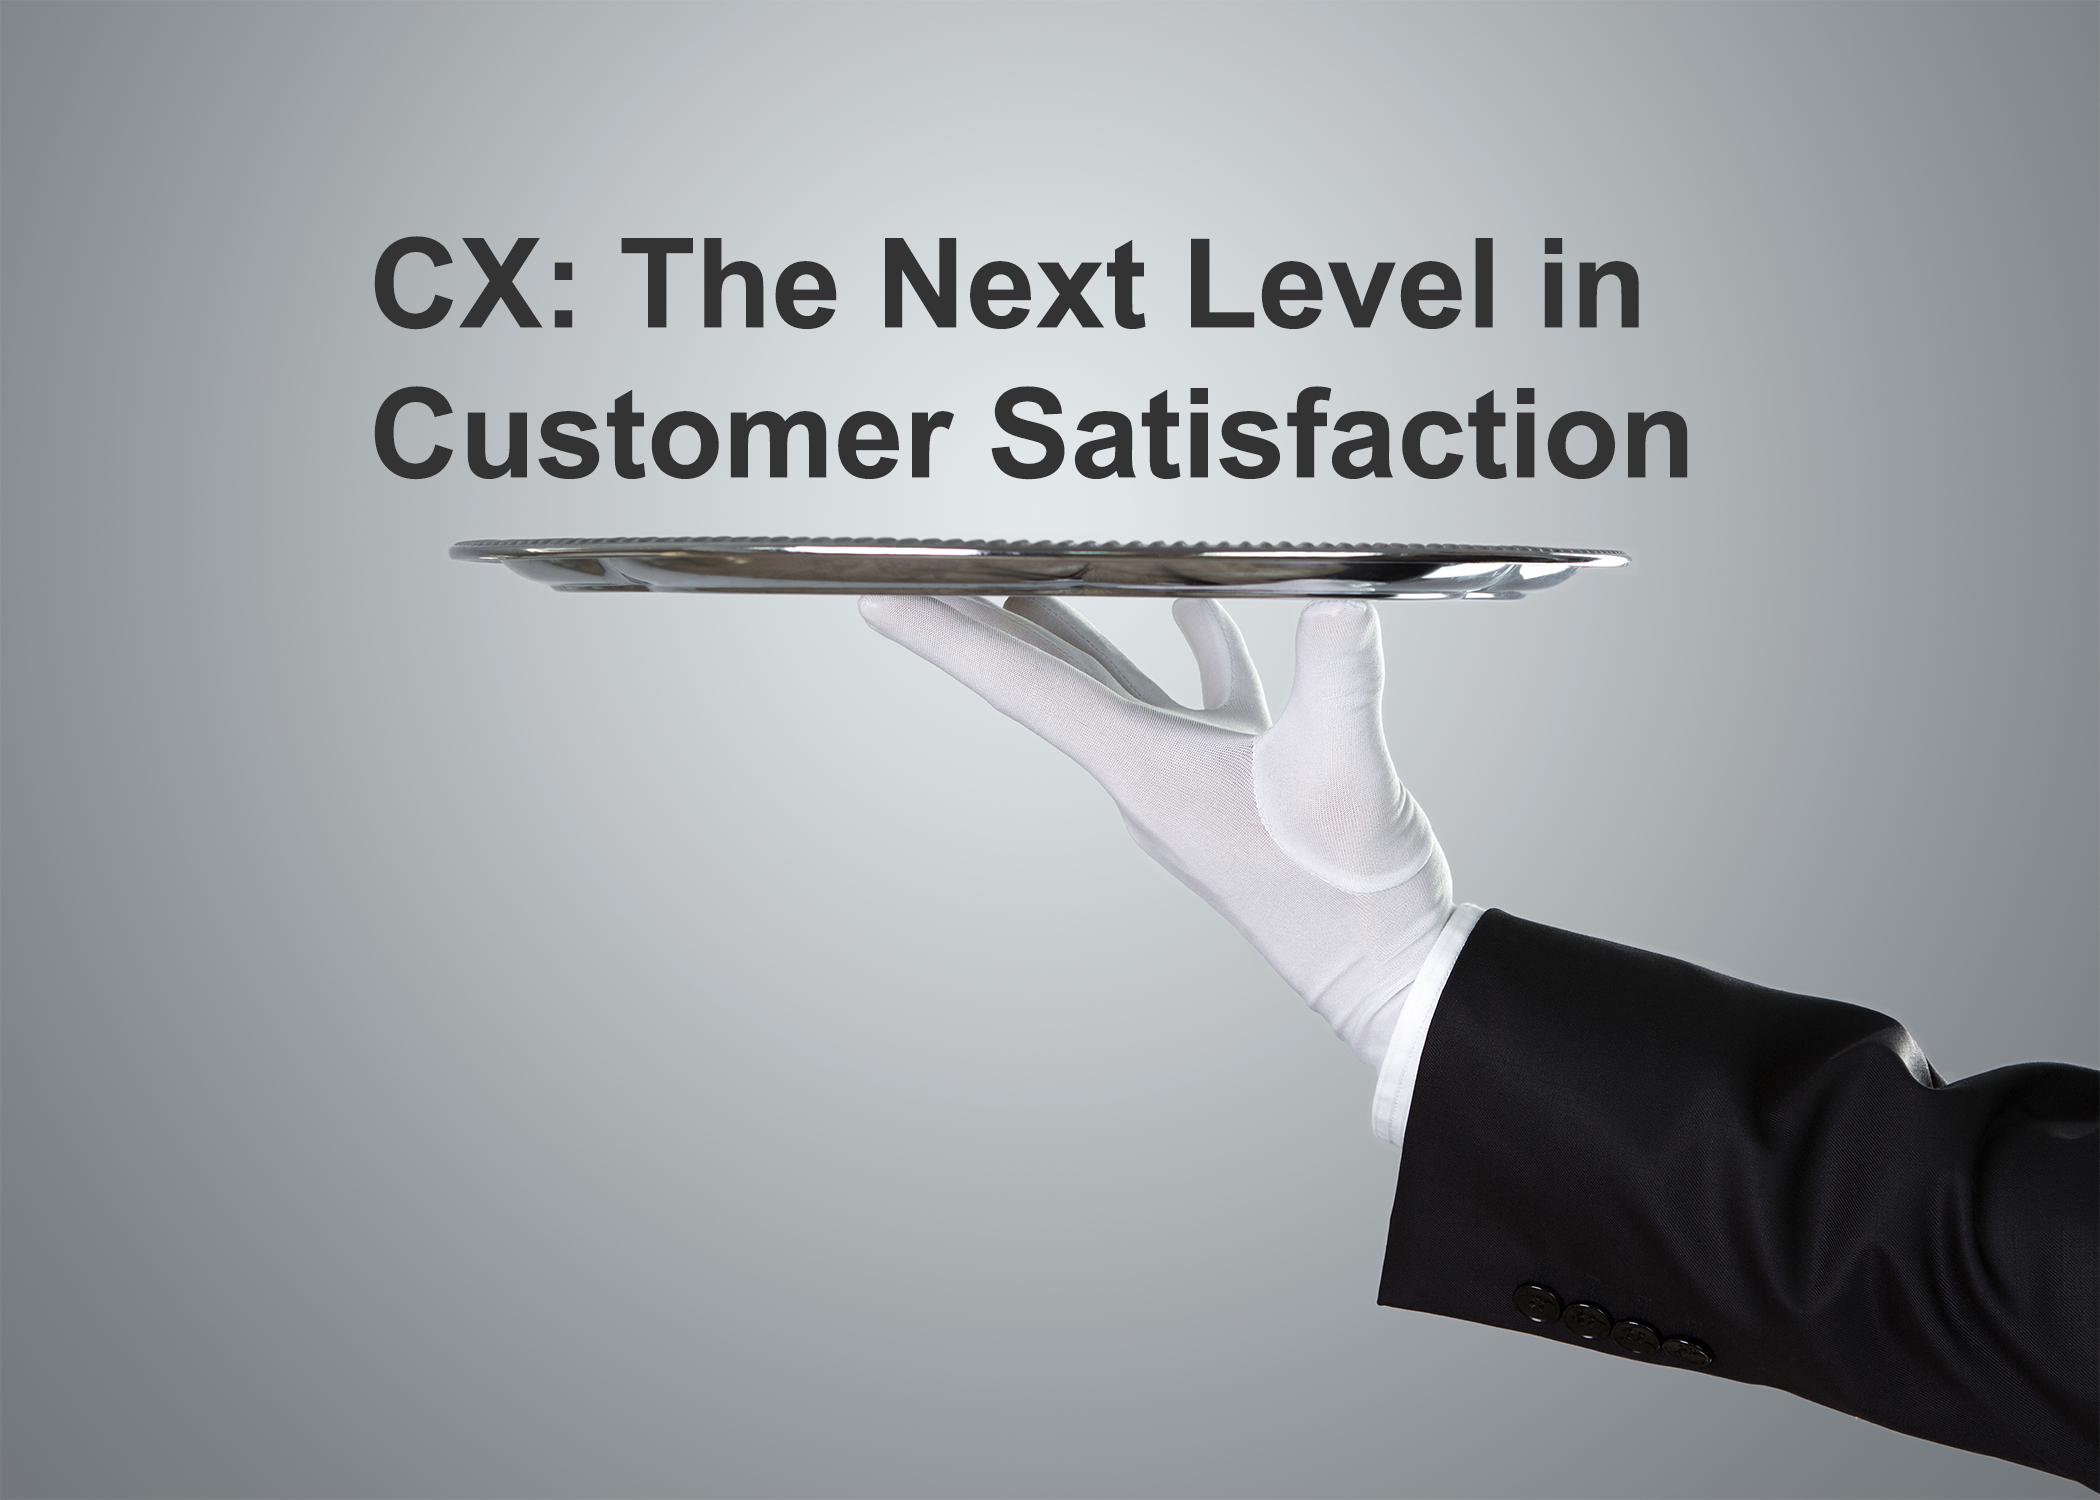 CX: The Next Level in Customer Satisfaction